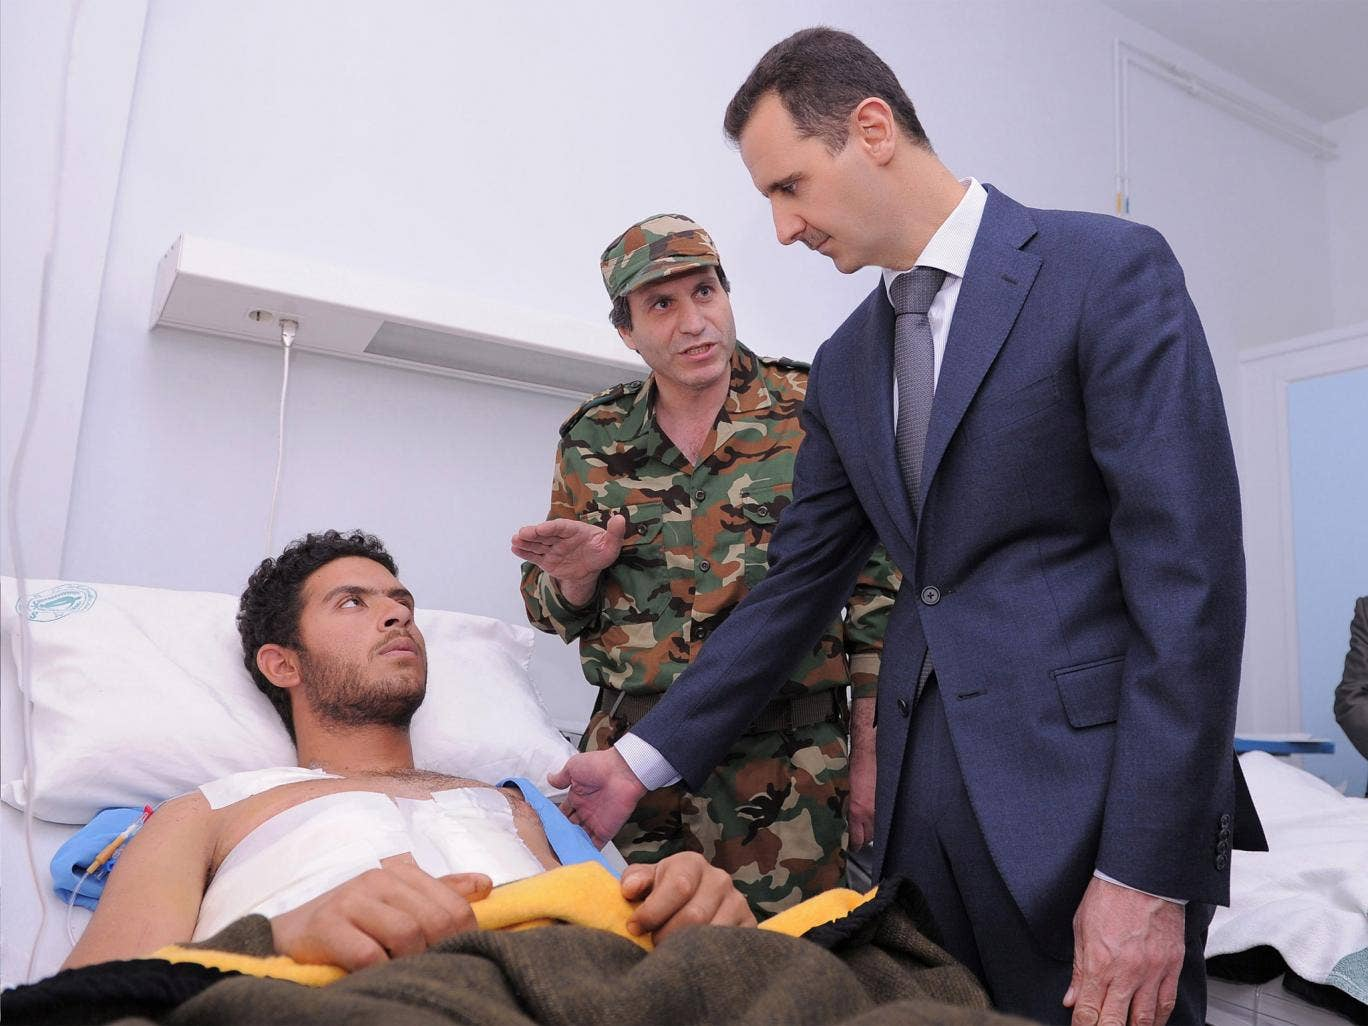 Syrian President Bashar Assad visits army and security soldiers wounded in the civil war at al-Youssef al-Azmah Hospital in Damascus